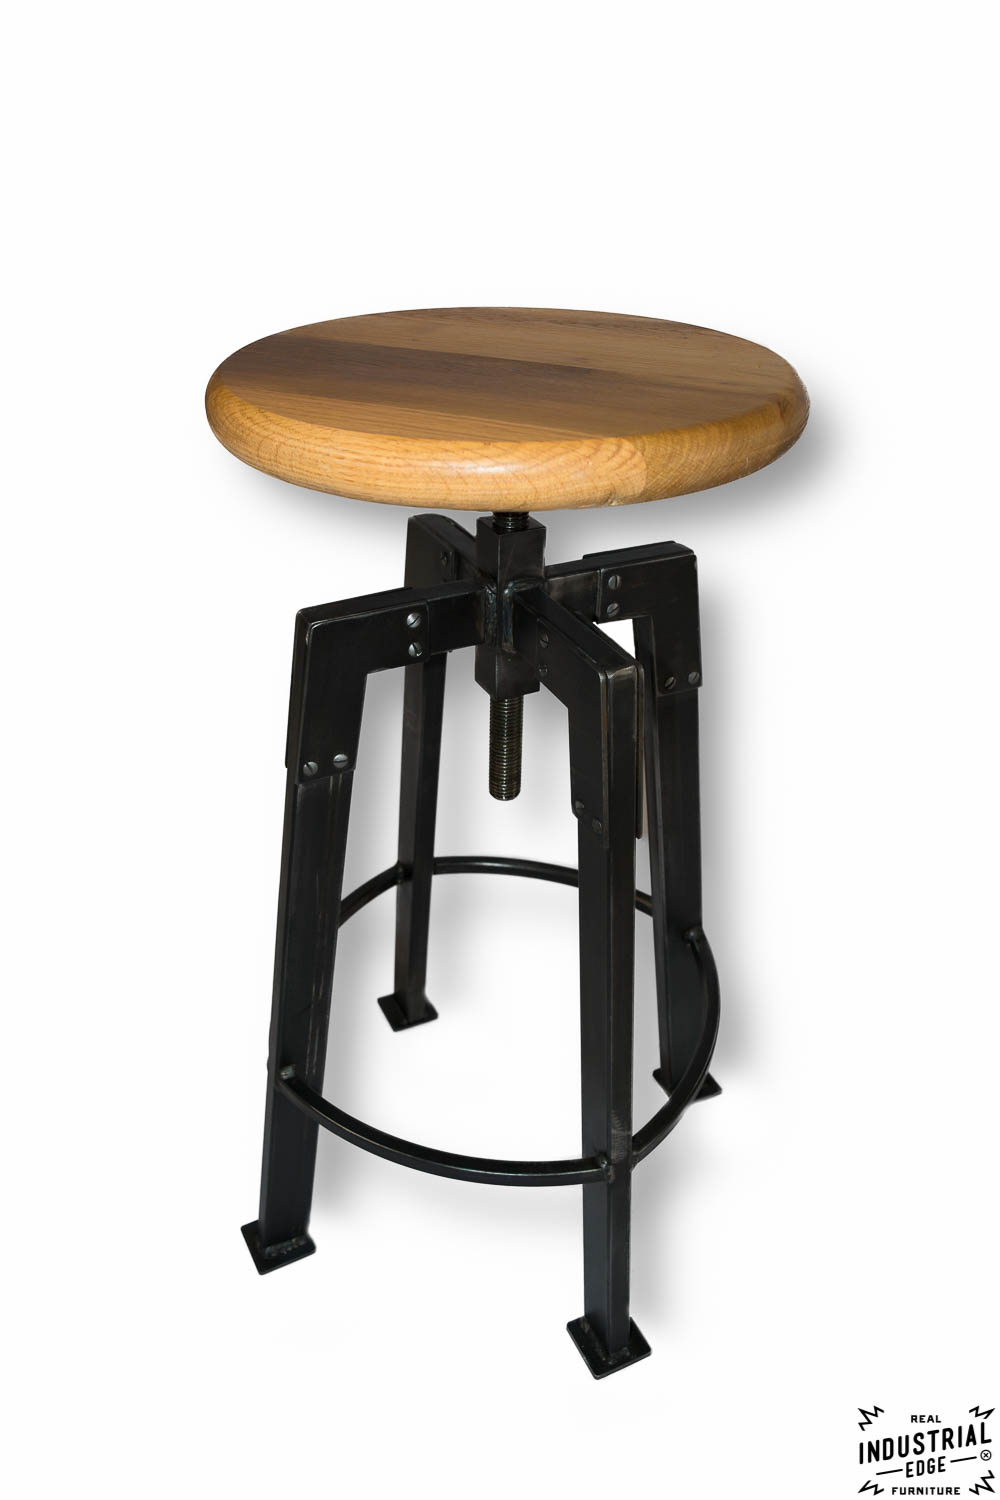 Industrial Chic Bar Stool Real Industrial Edge Furniture